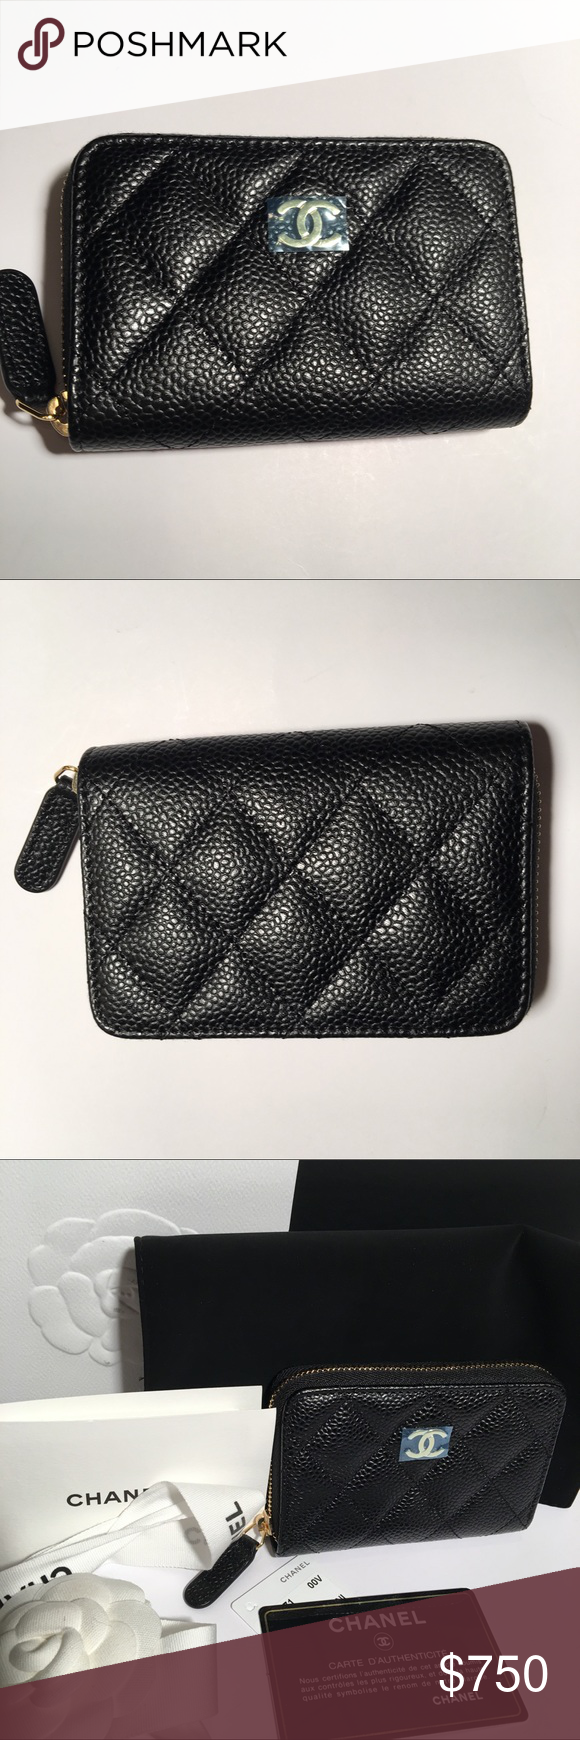 a1310782eee0 Bn Chanel Classic Zippy O Coin Purse Brand New Chanel Classic Zippy Wallet  in Black Caviar Leather with Gold Hardware. Purchased directly from Chanel  ...